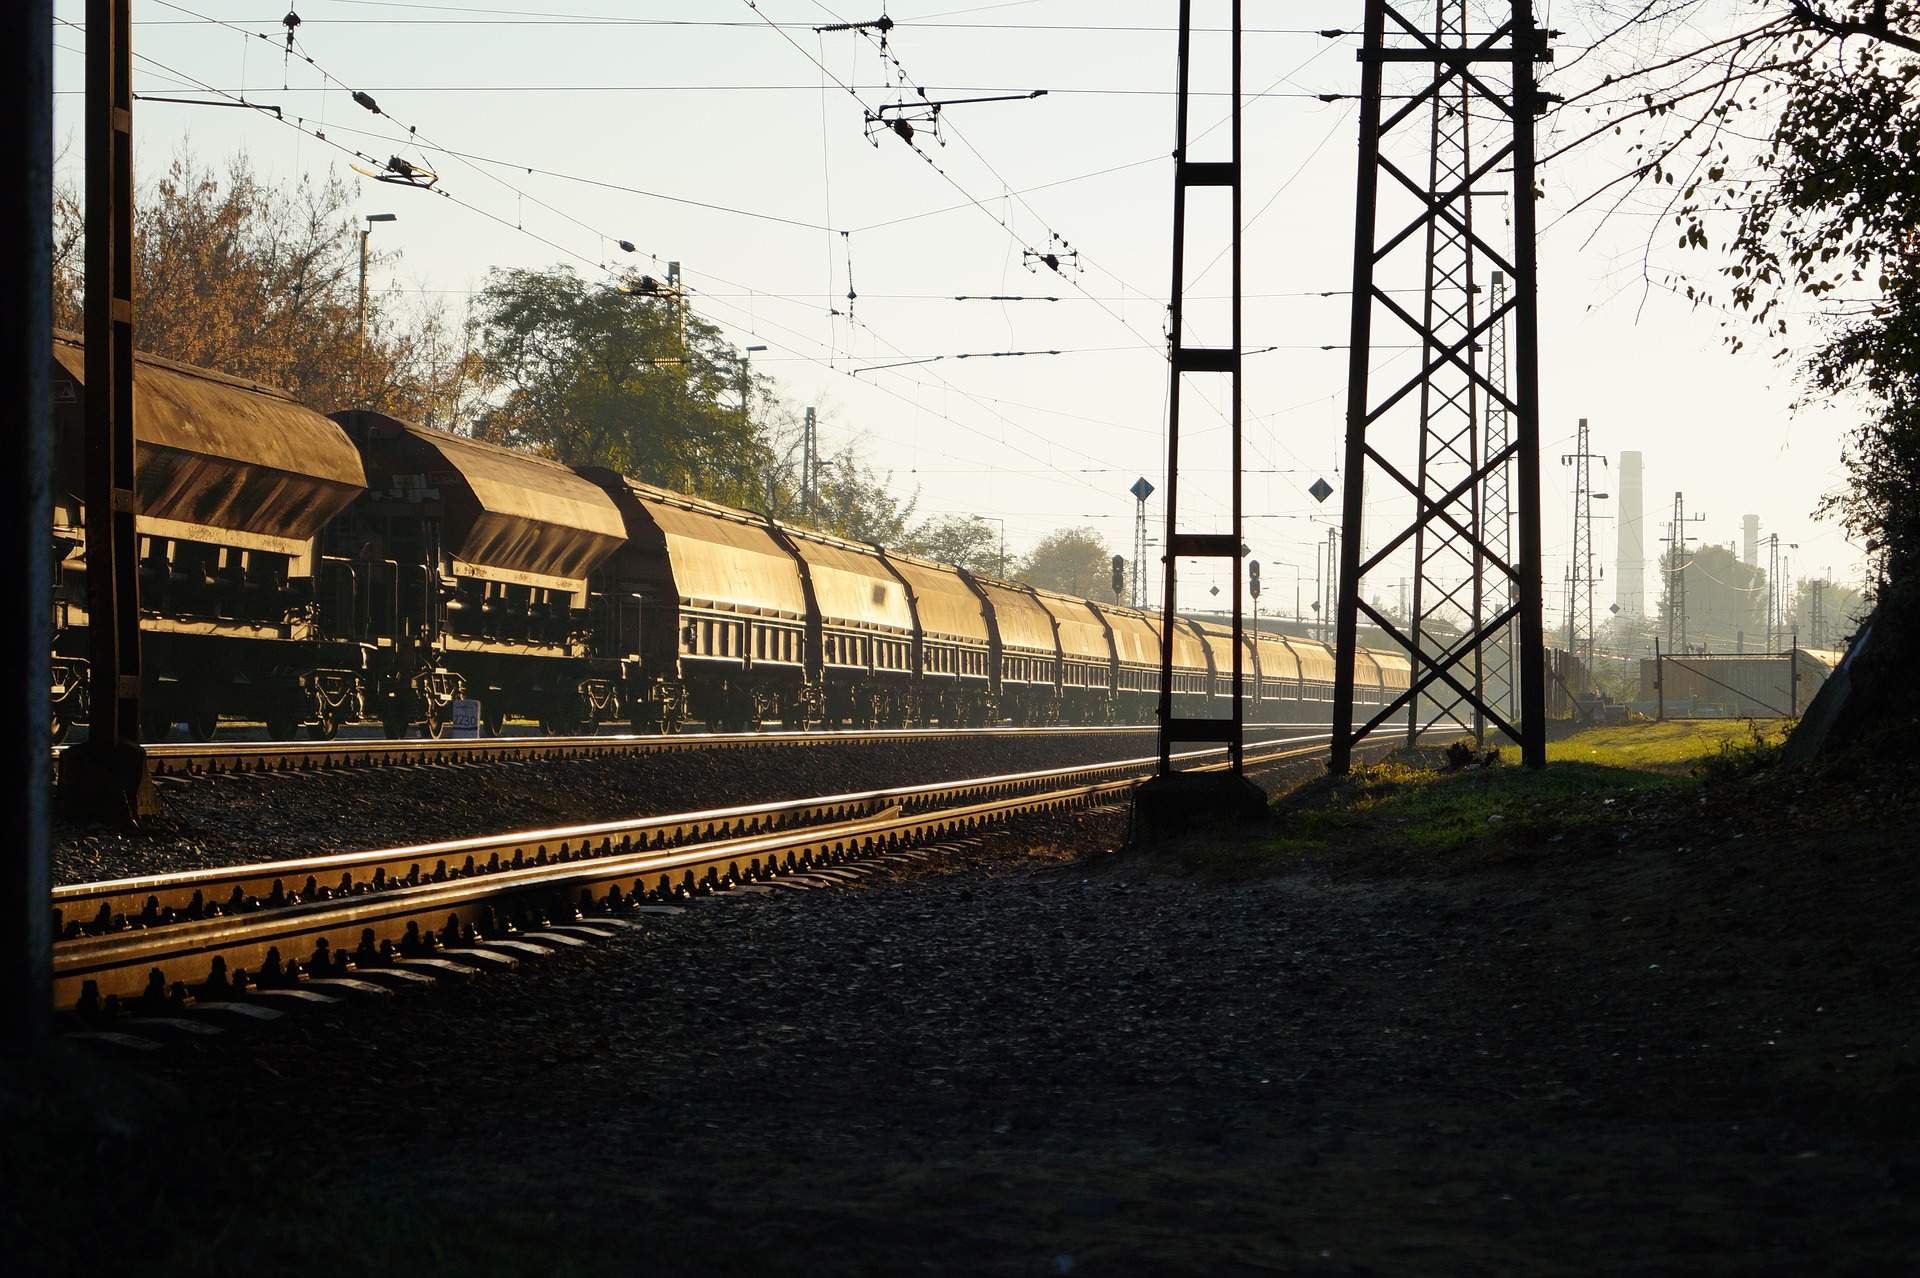 Image of a train transporting goods between Germany and China